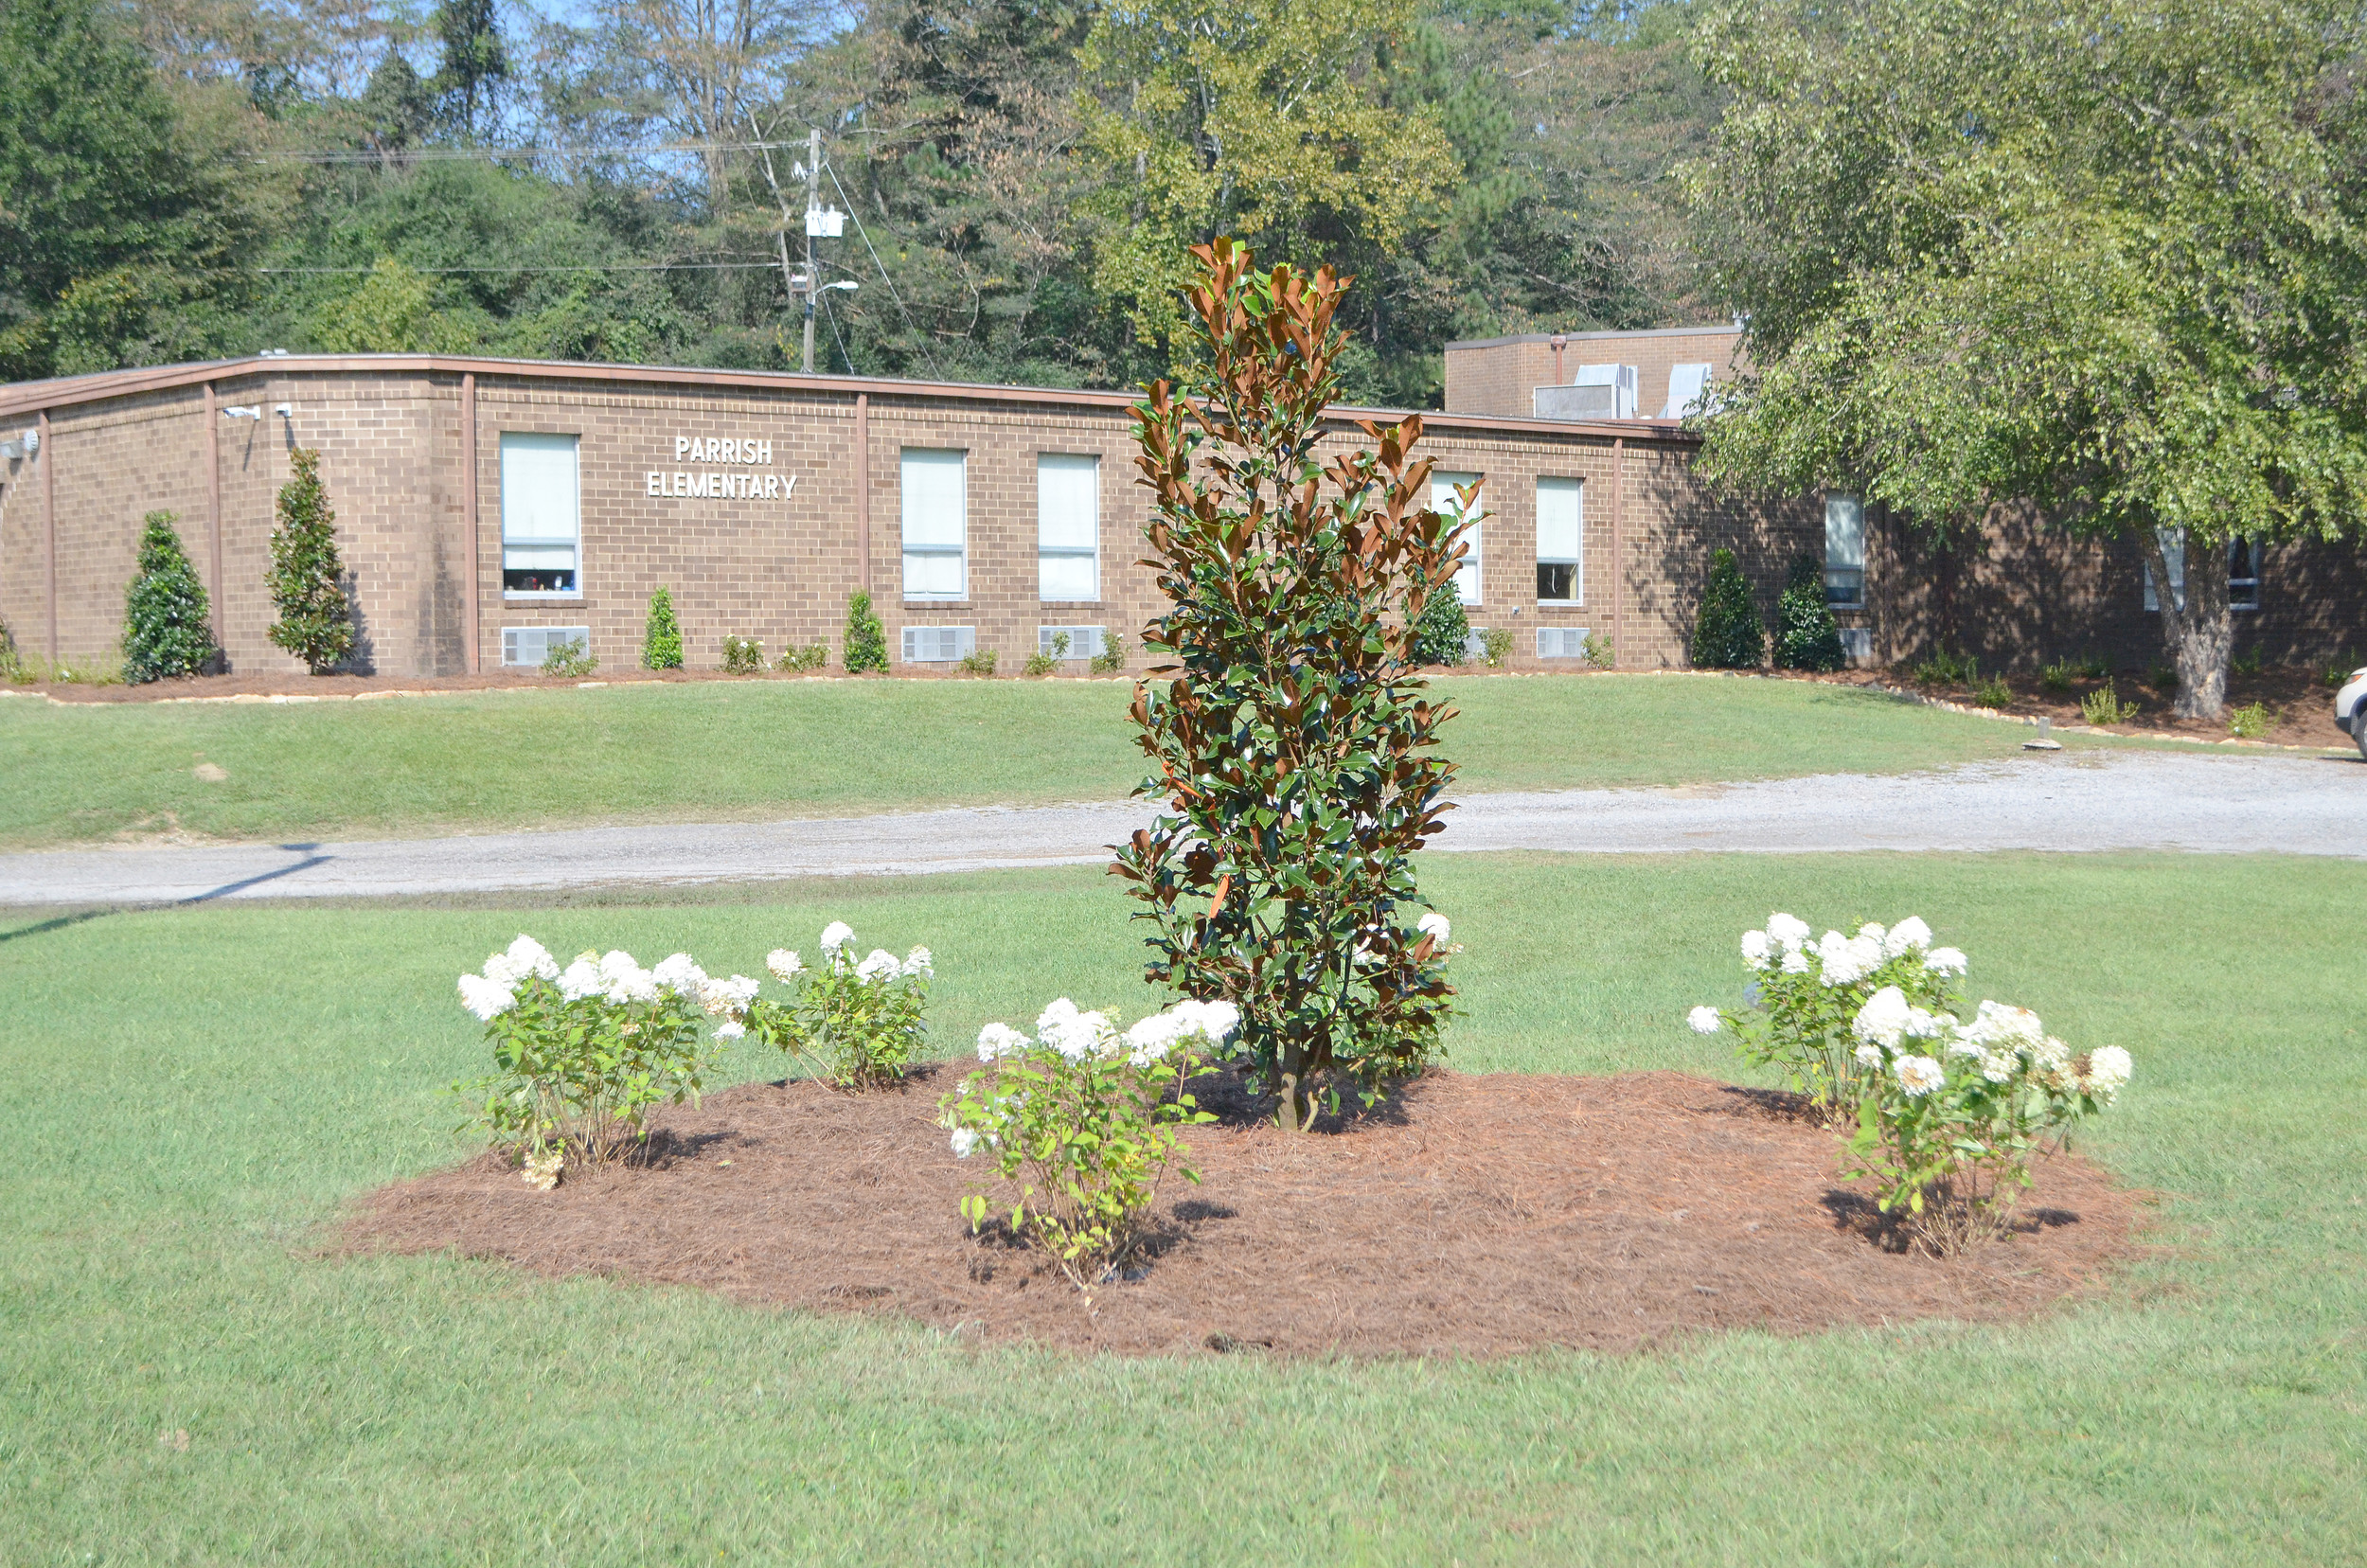 Parrish Elementary School recently received new landscaping and will receive a new gym floor and roof in 2018 and 2019 as part of the Walker County Board of Education's 5-year capital plan. Daily Mountain Eagle - Nicole Smith